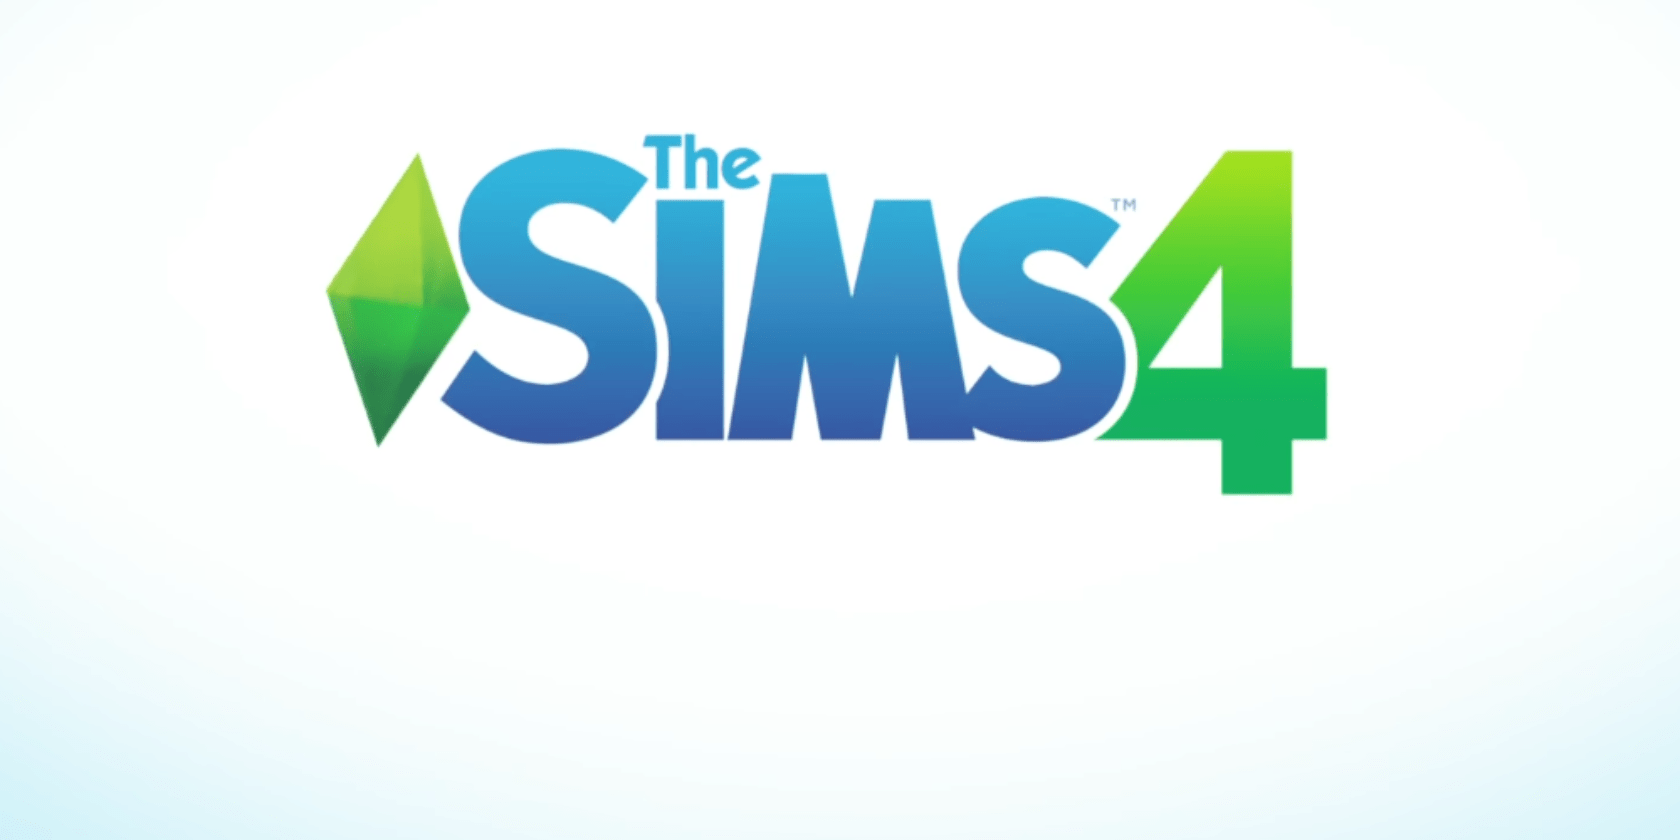 The Sims 4 Is Free on PC (If You're Quick)